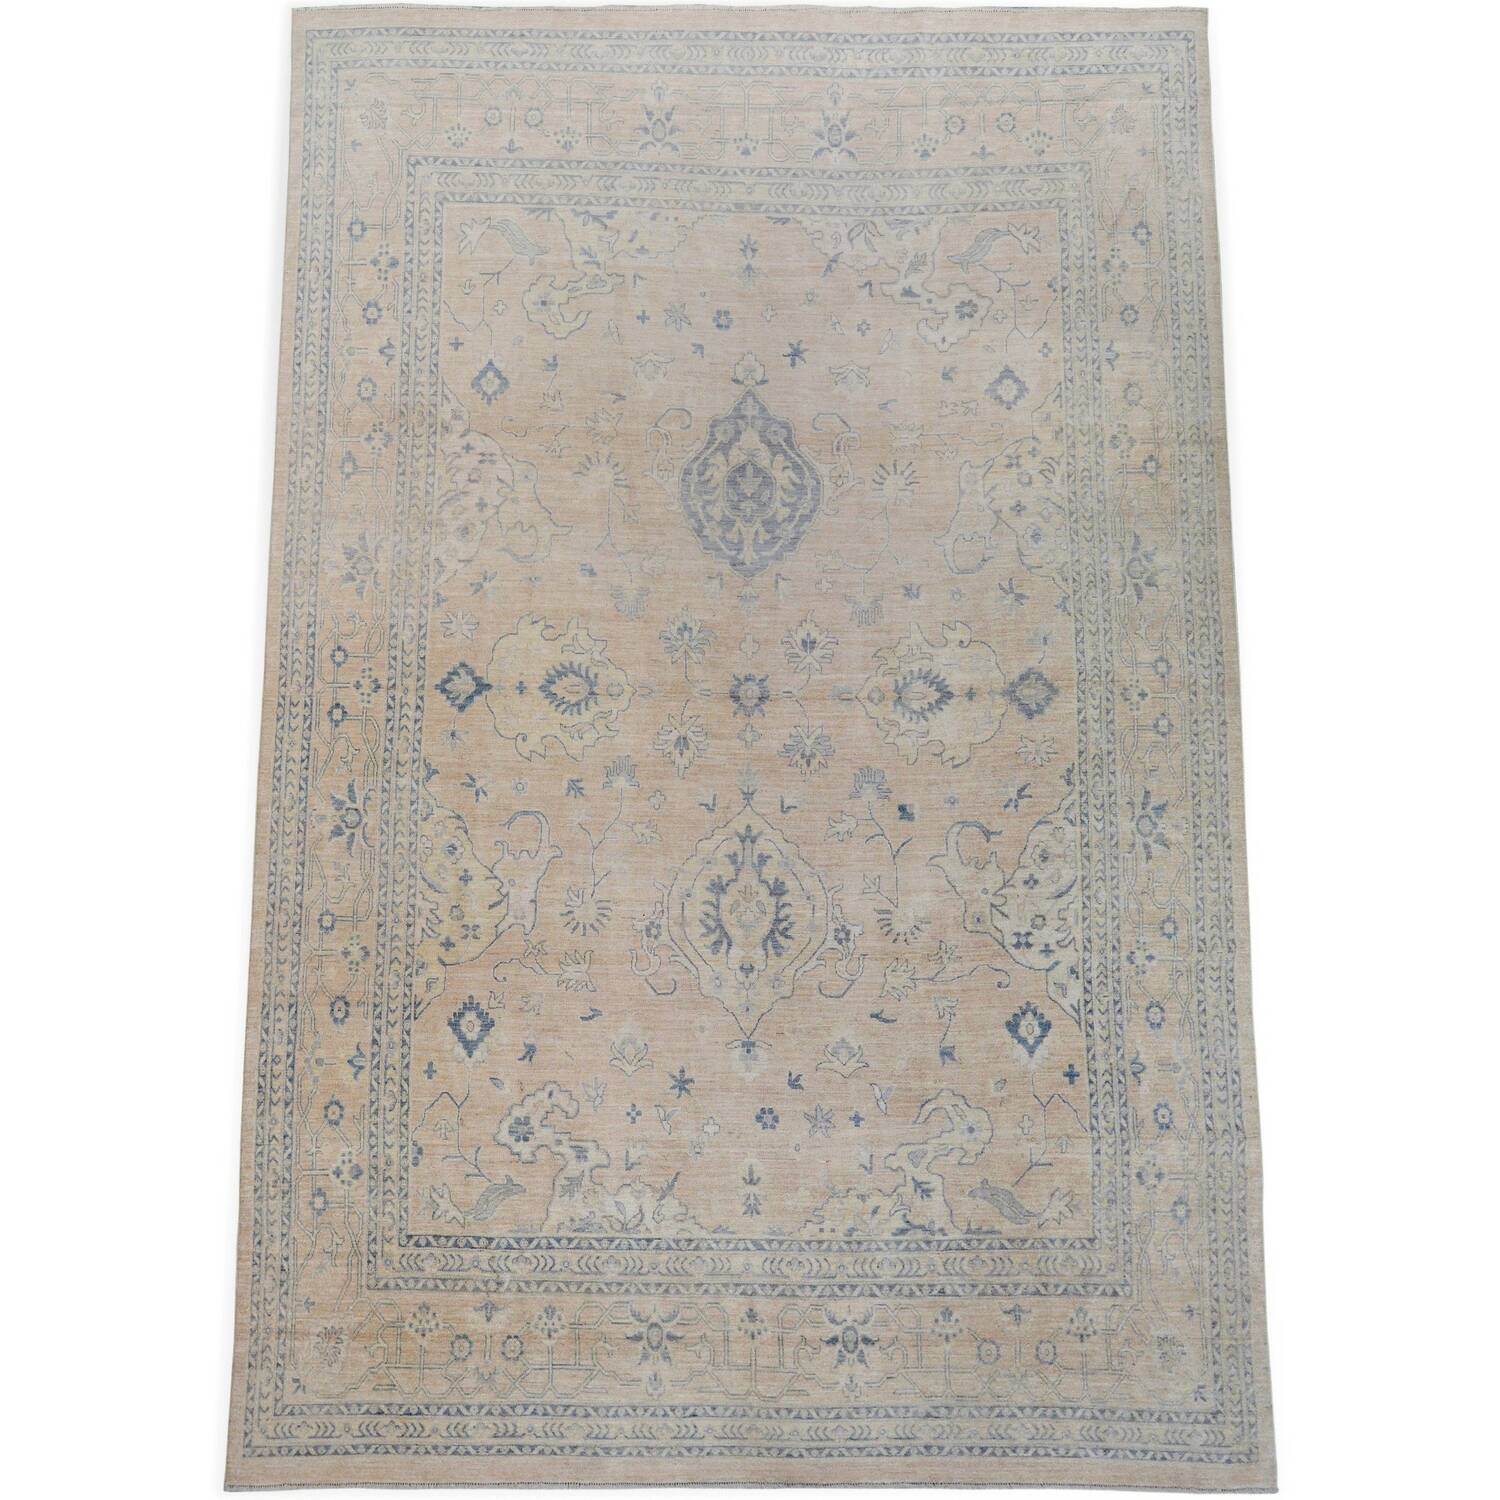 Muted Floral Oushak Turkish Area Rug 12x15 image 2